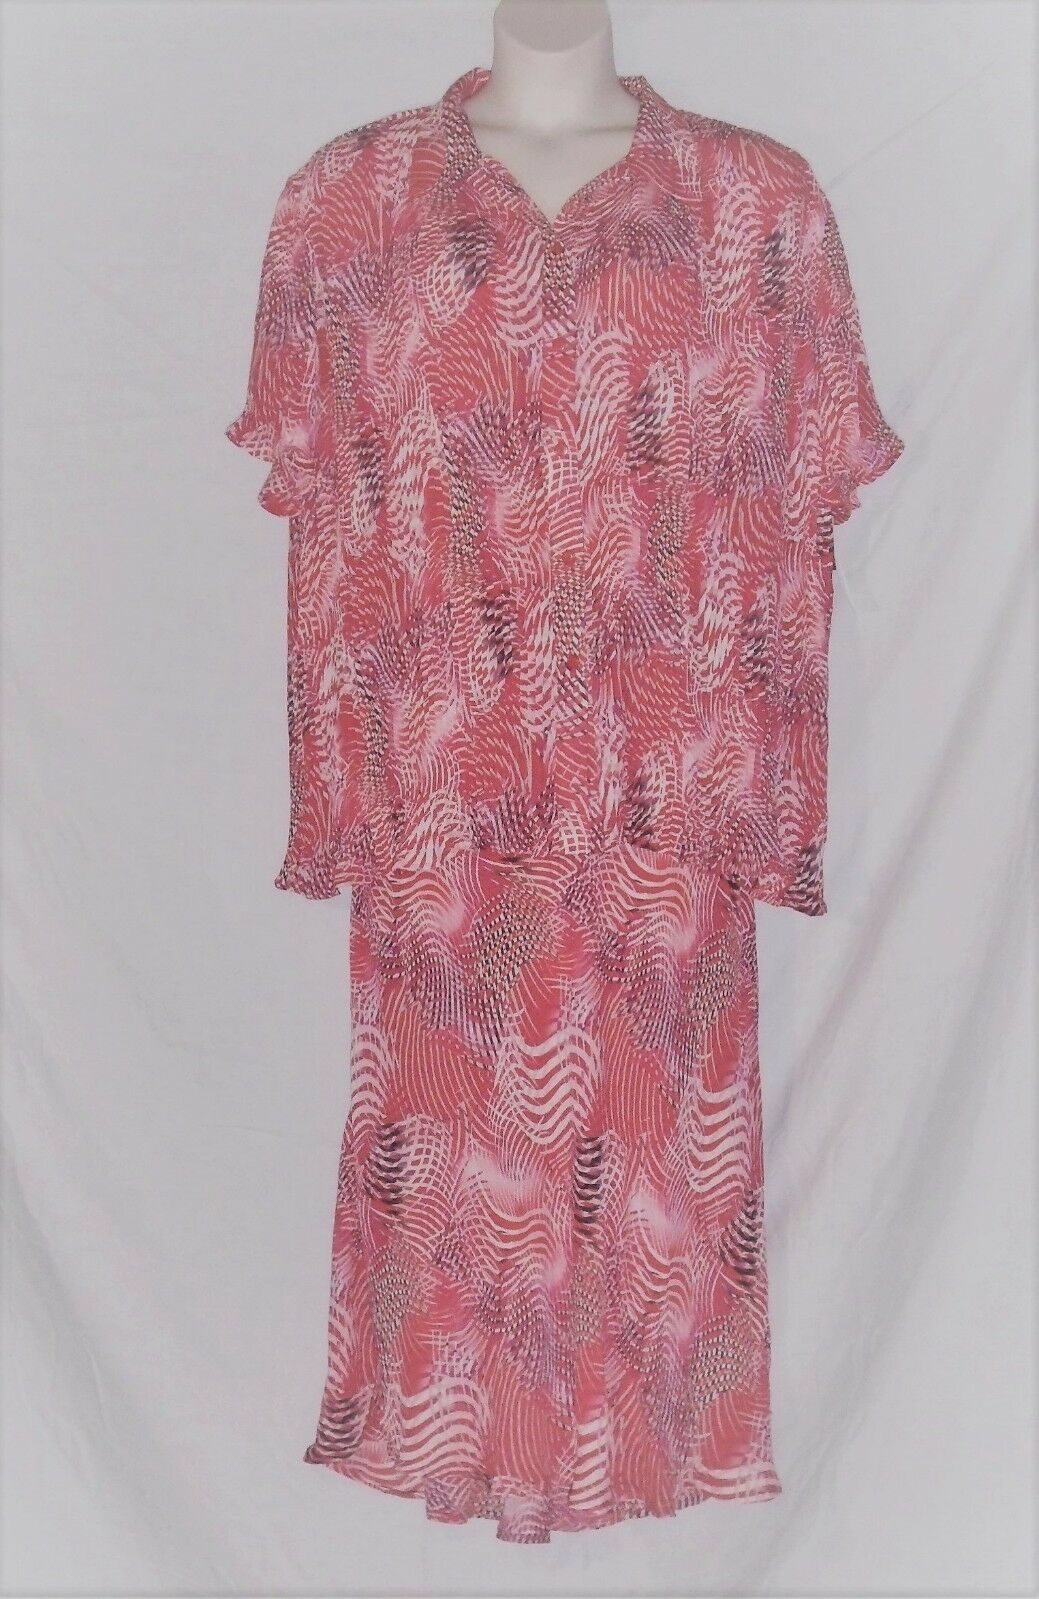 DRESS-U-II BY SHARON - LONG SKIRT & BLOUSE SET – CORAL & PINK – SIZE 3X –NWT